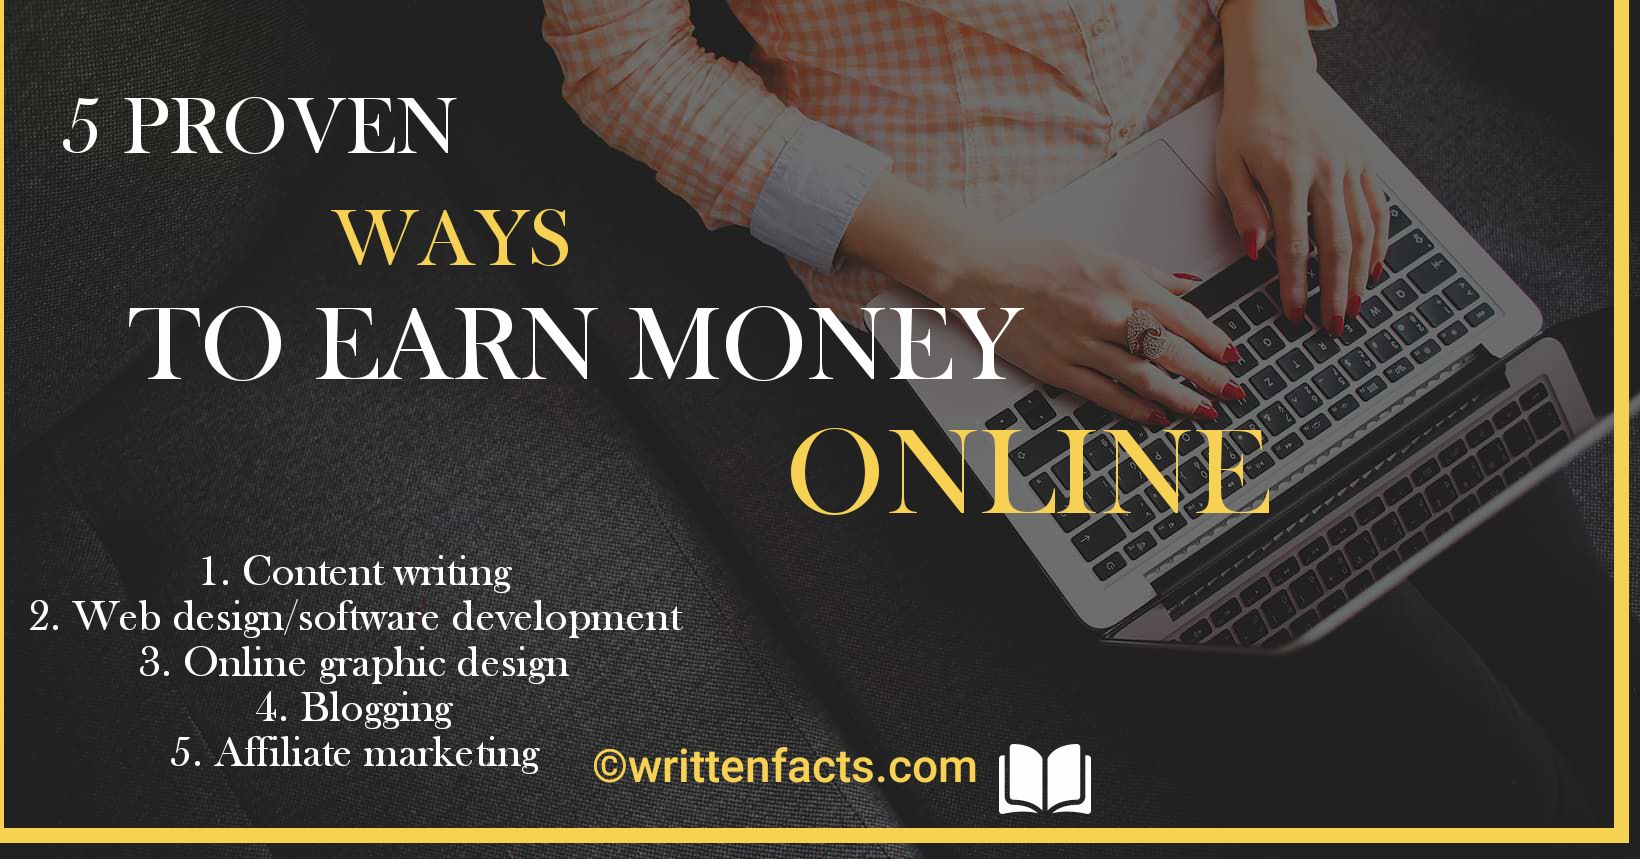 Five Proven Ways to Make Money Online